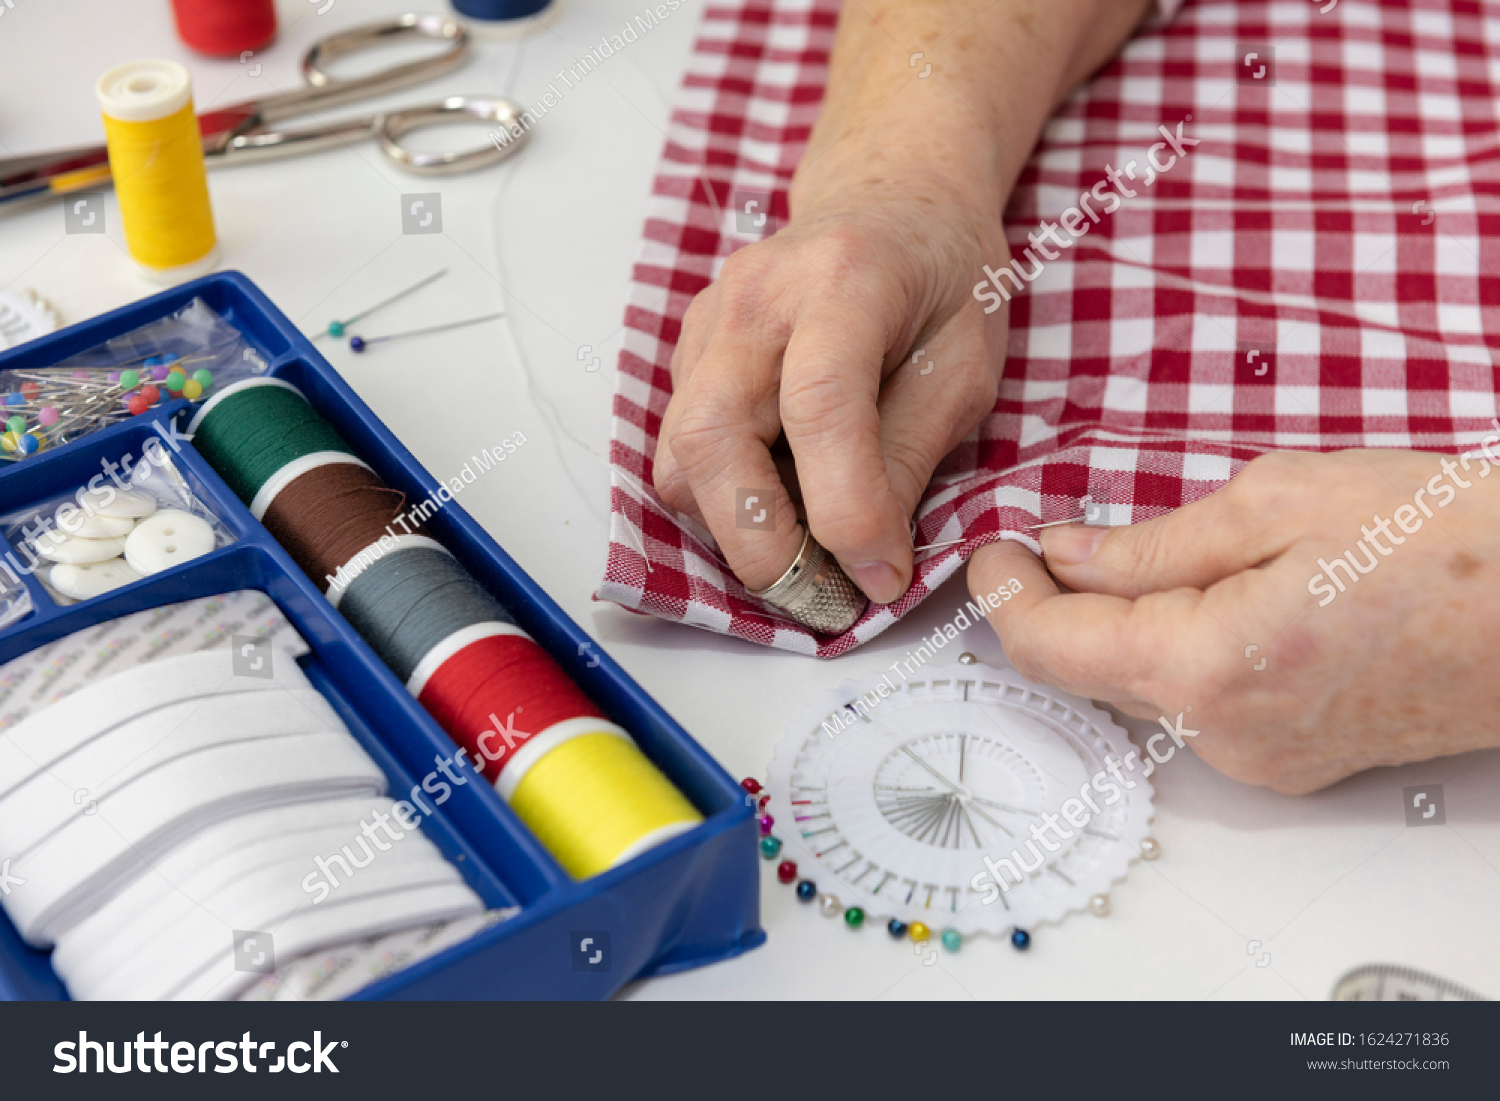 stock-photo-seamstress-sewing-with-needl